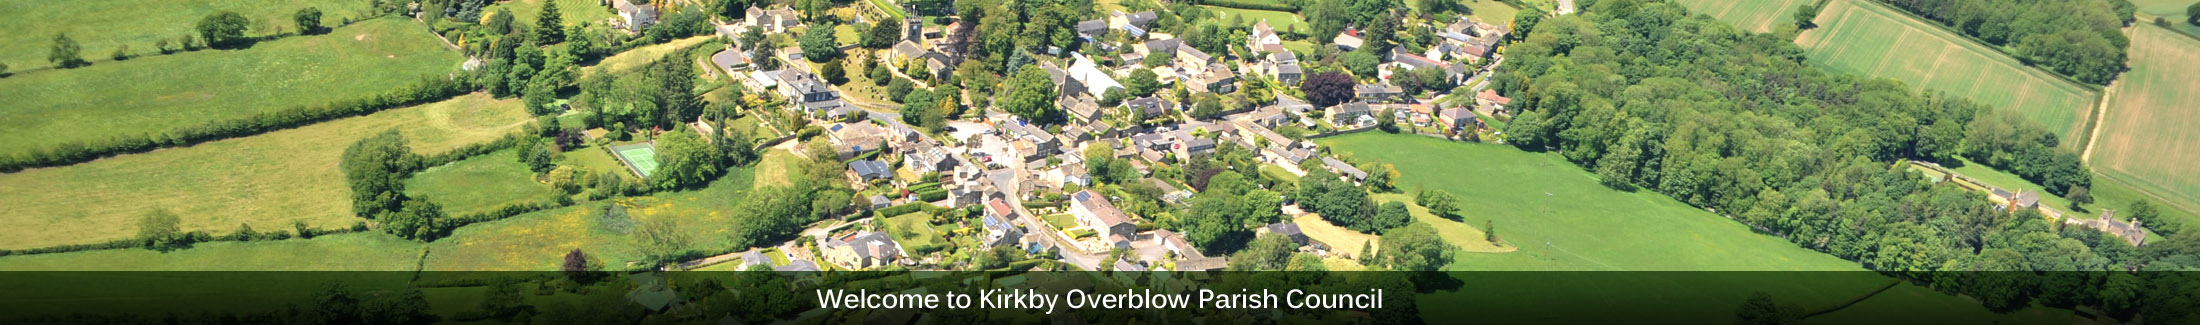 Header Image for Kirkby Overblow Parish Council